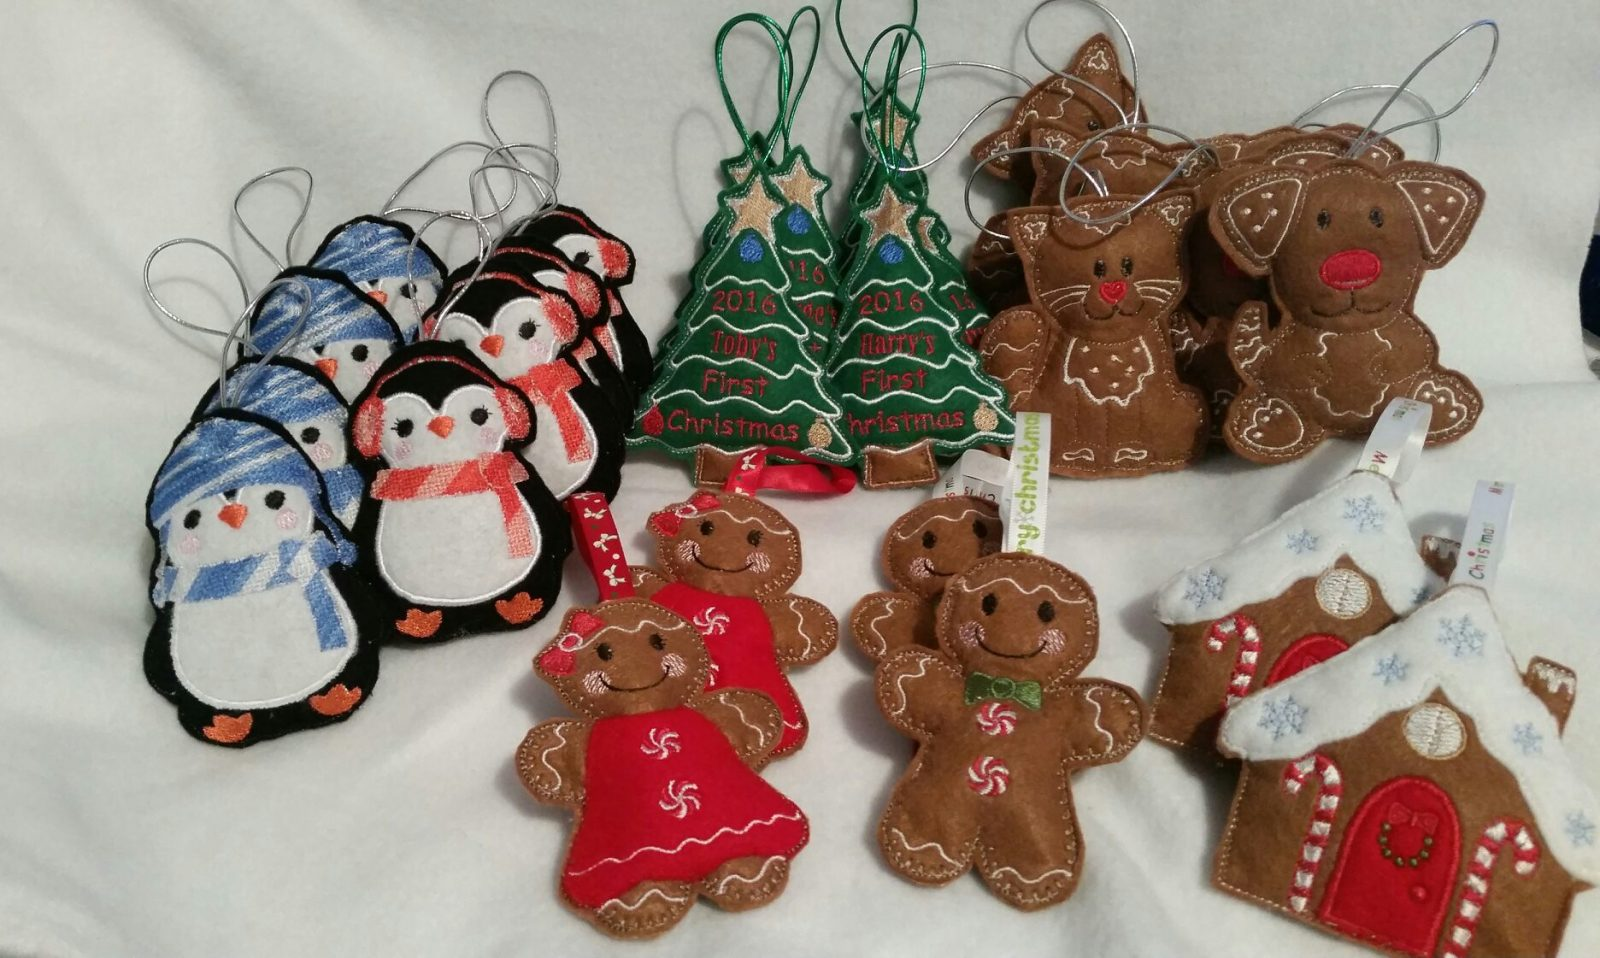 Gingerbread Family Tree Decorations made with Felt Fabrics